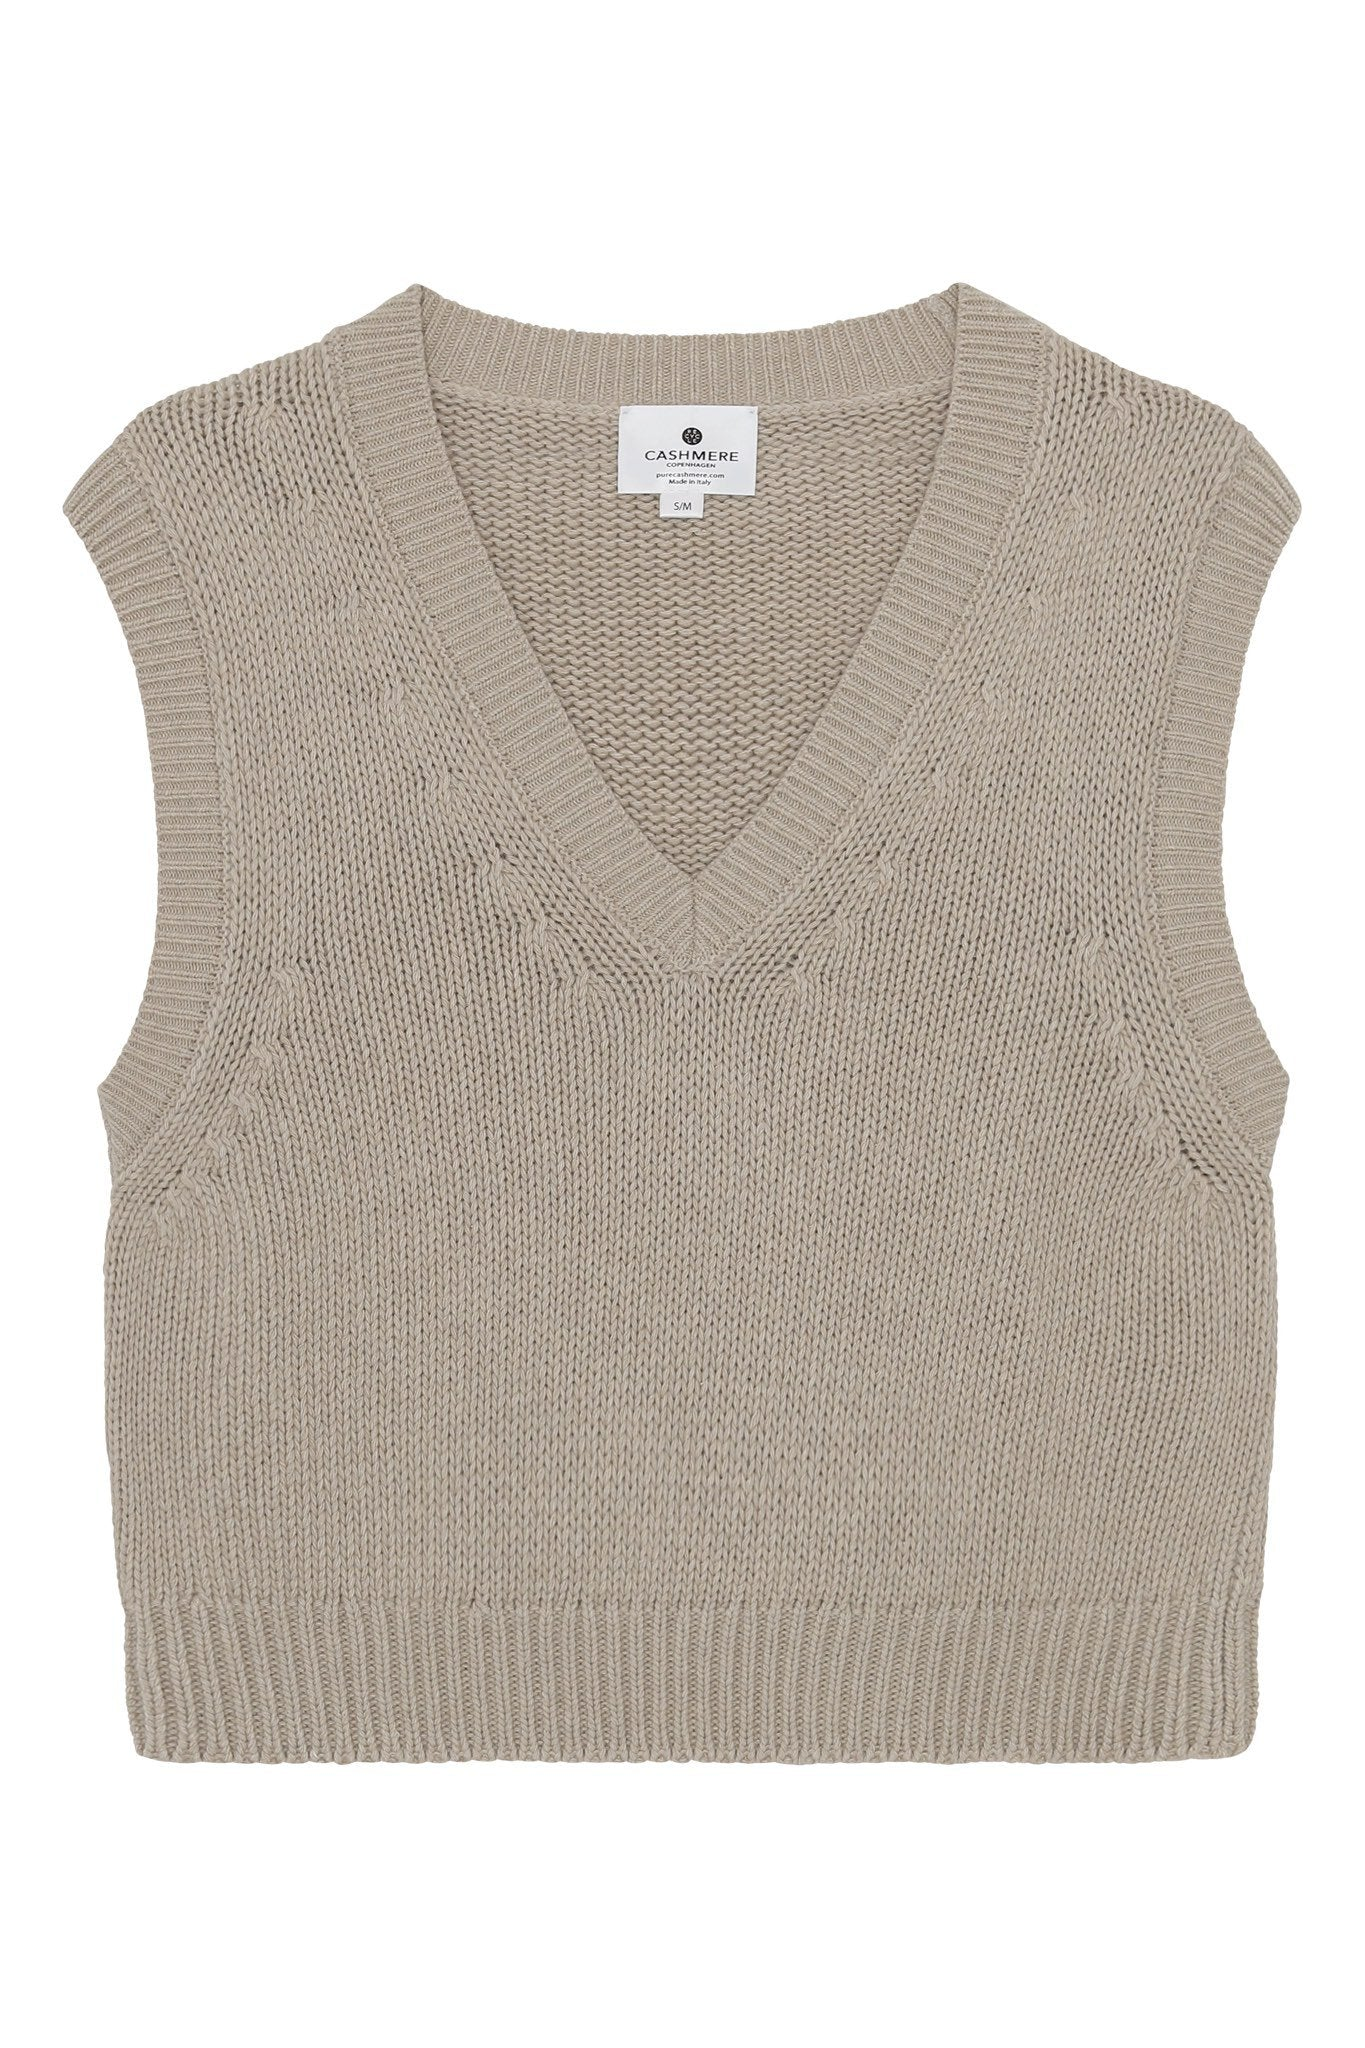 Ragna - chunky strikvest i recycle cashmere - Beige